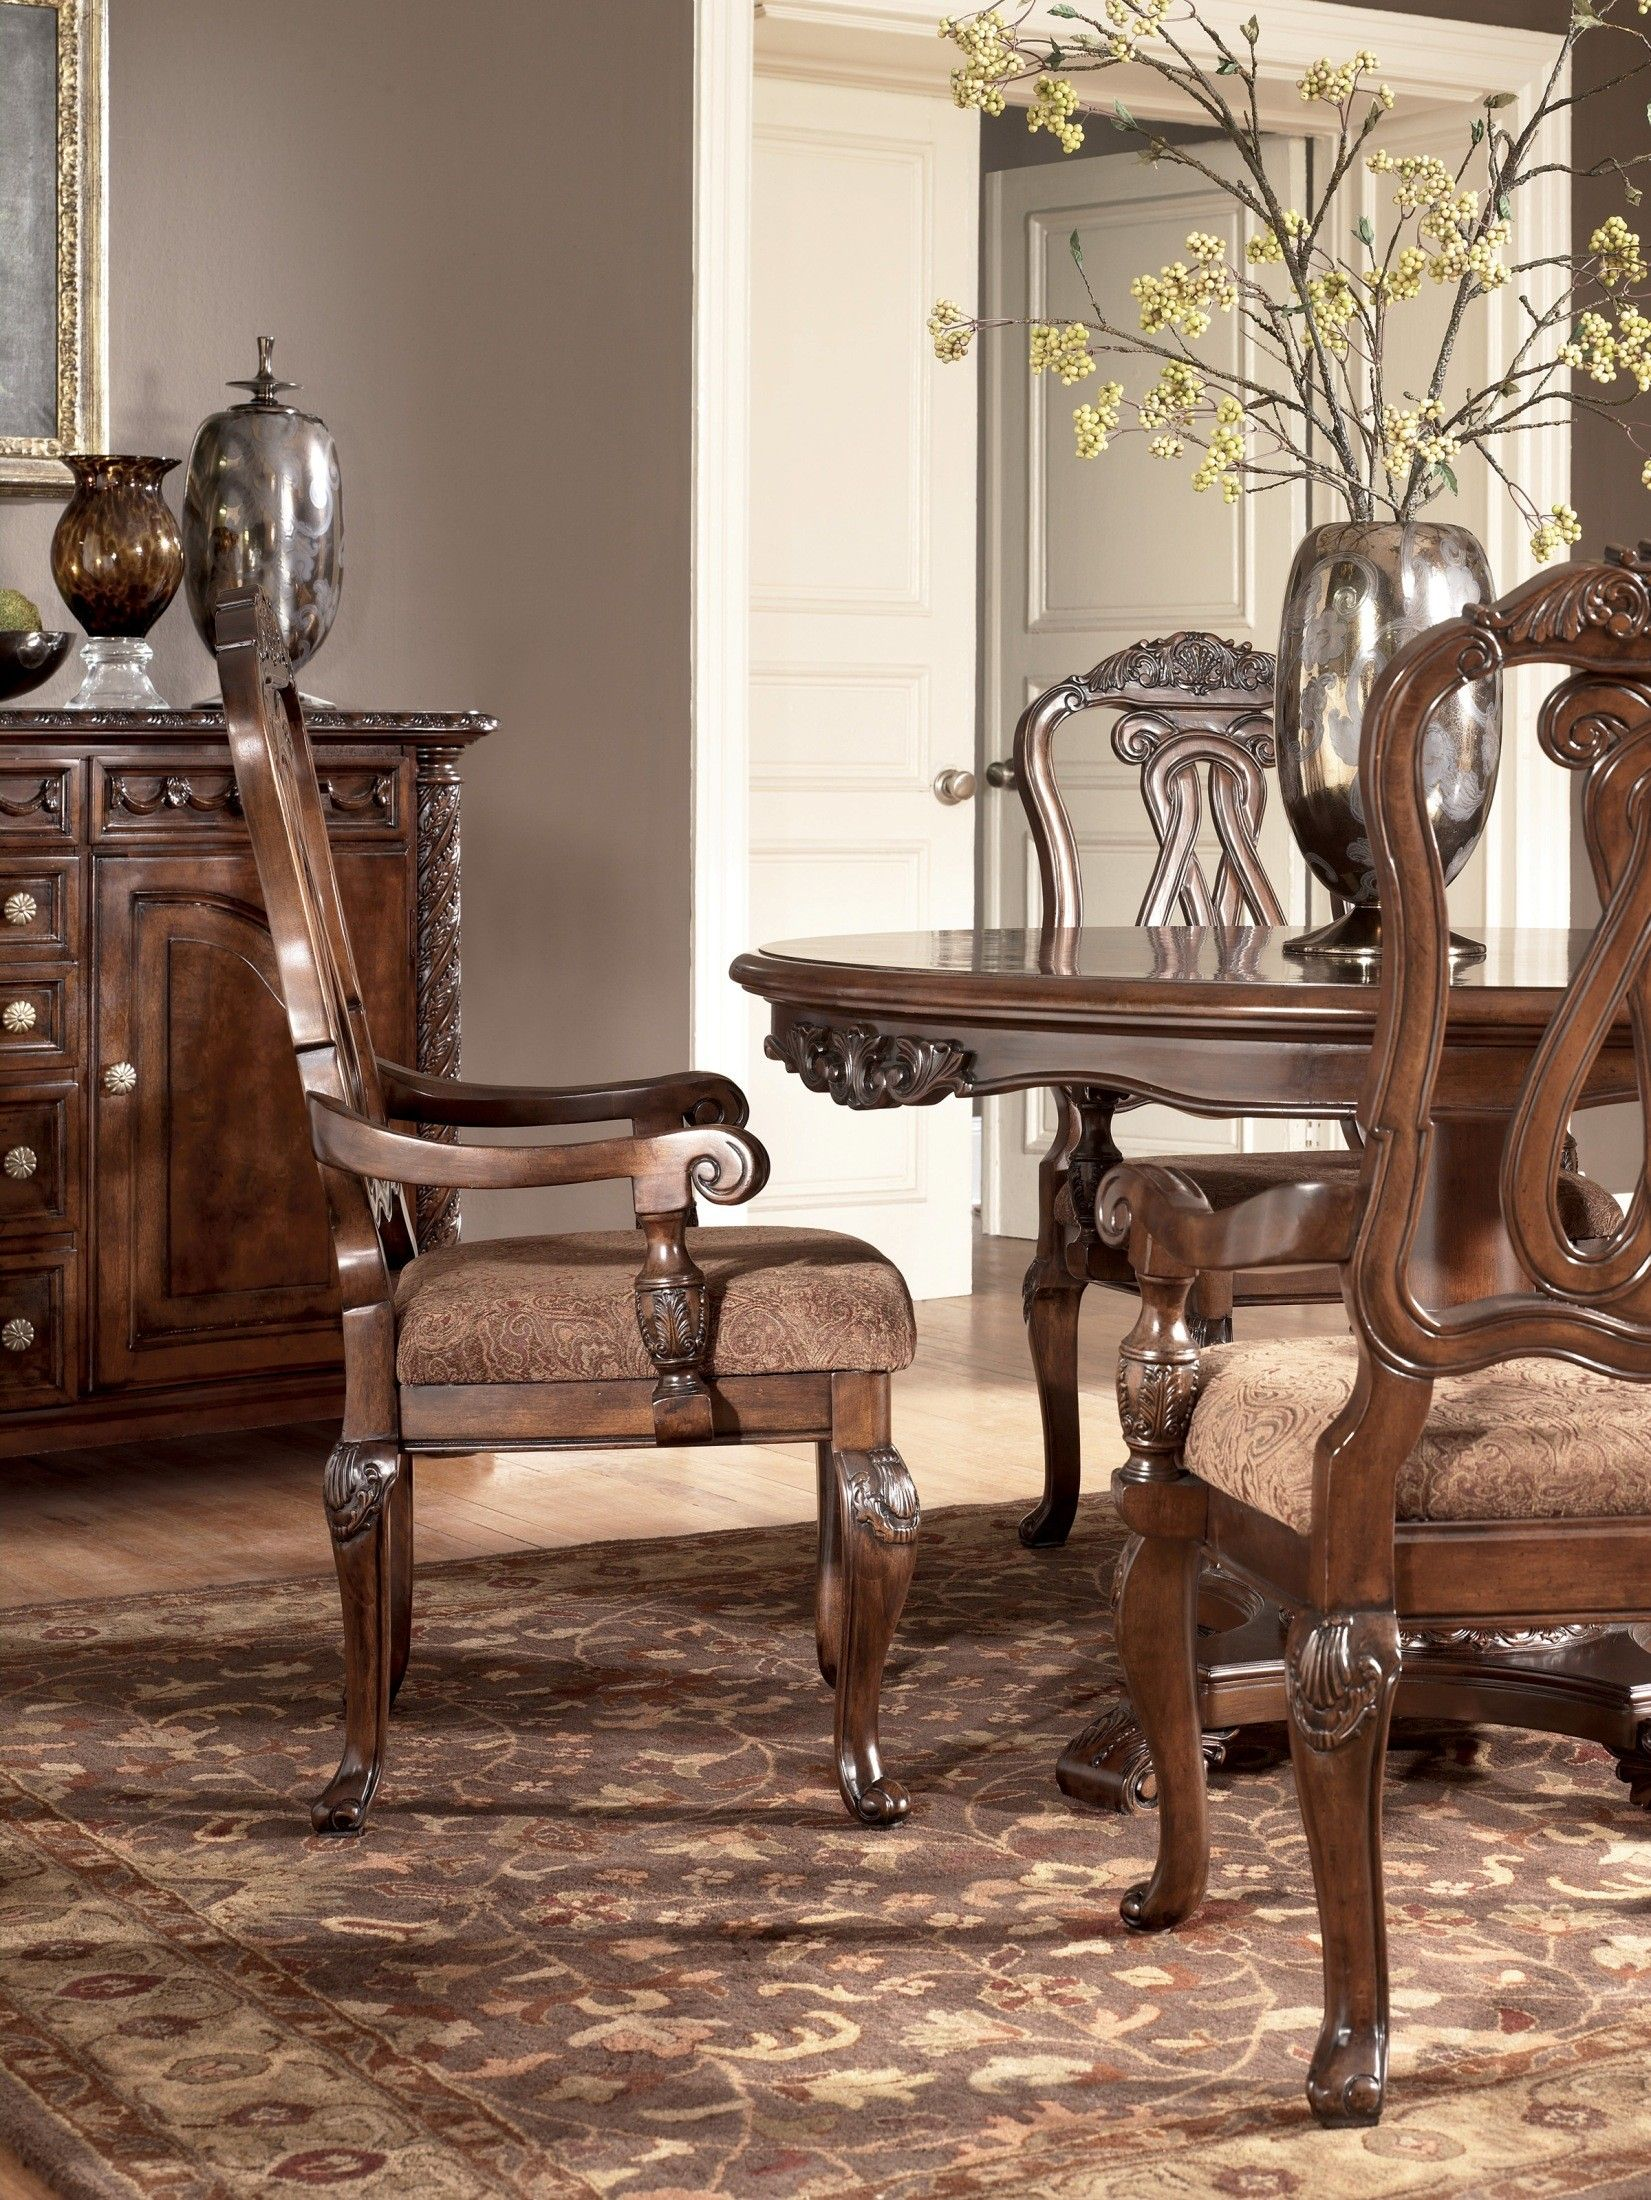 Ashley North Shore Round Pedestal Dining Room Set D553 Round Pedestal Dining Formal Dining Room Sets Dining Room Furniture Sets